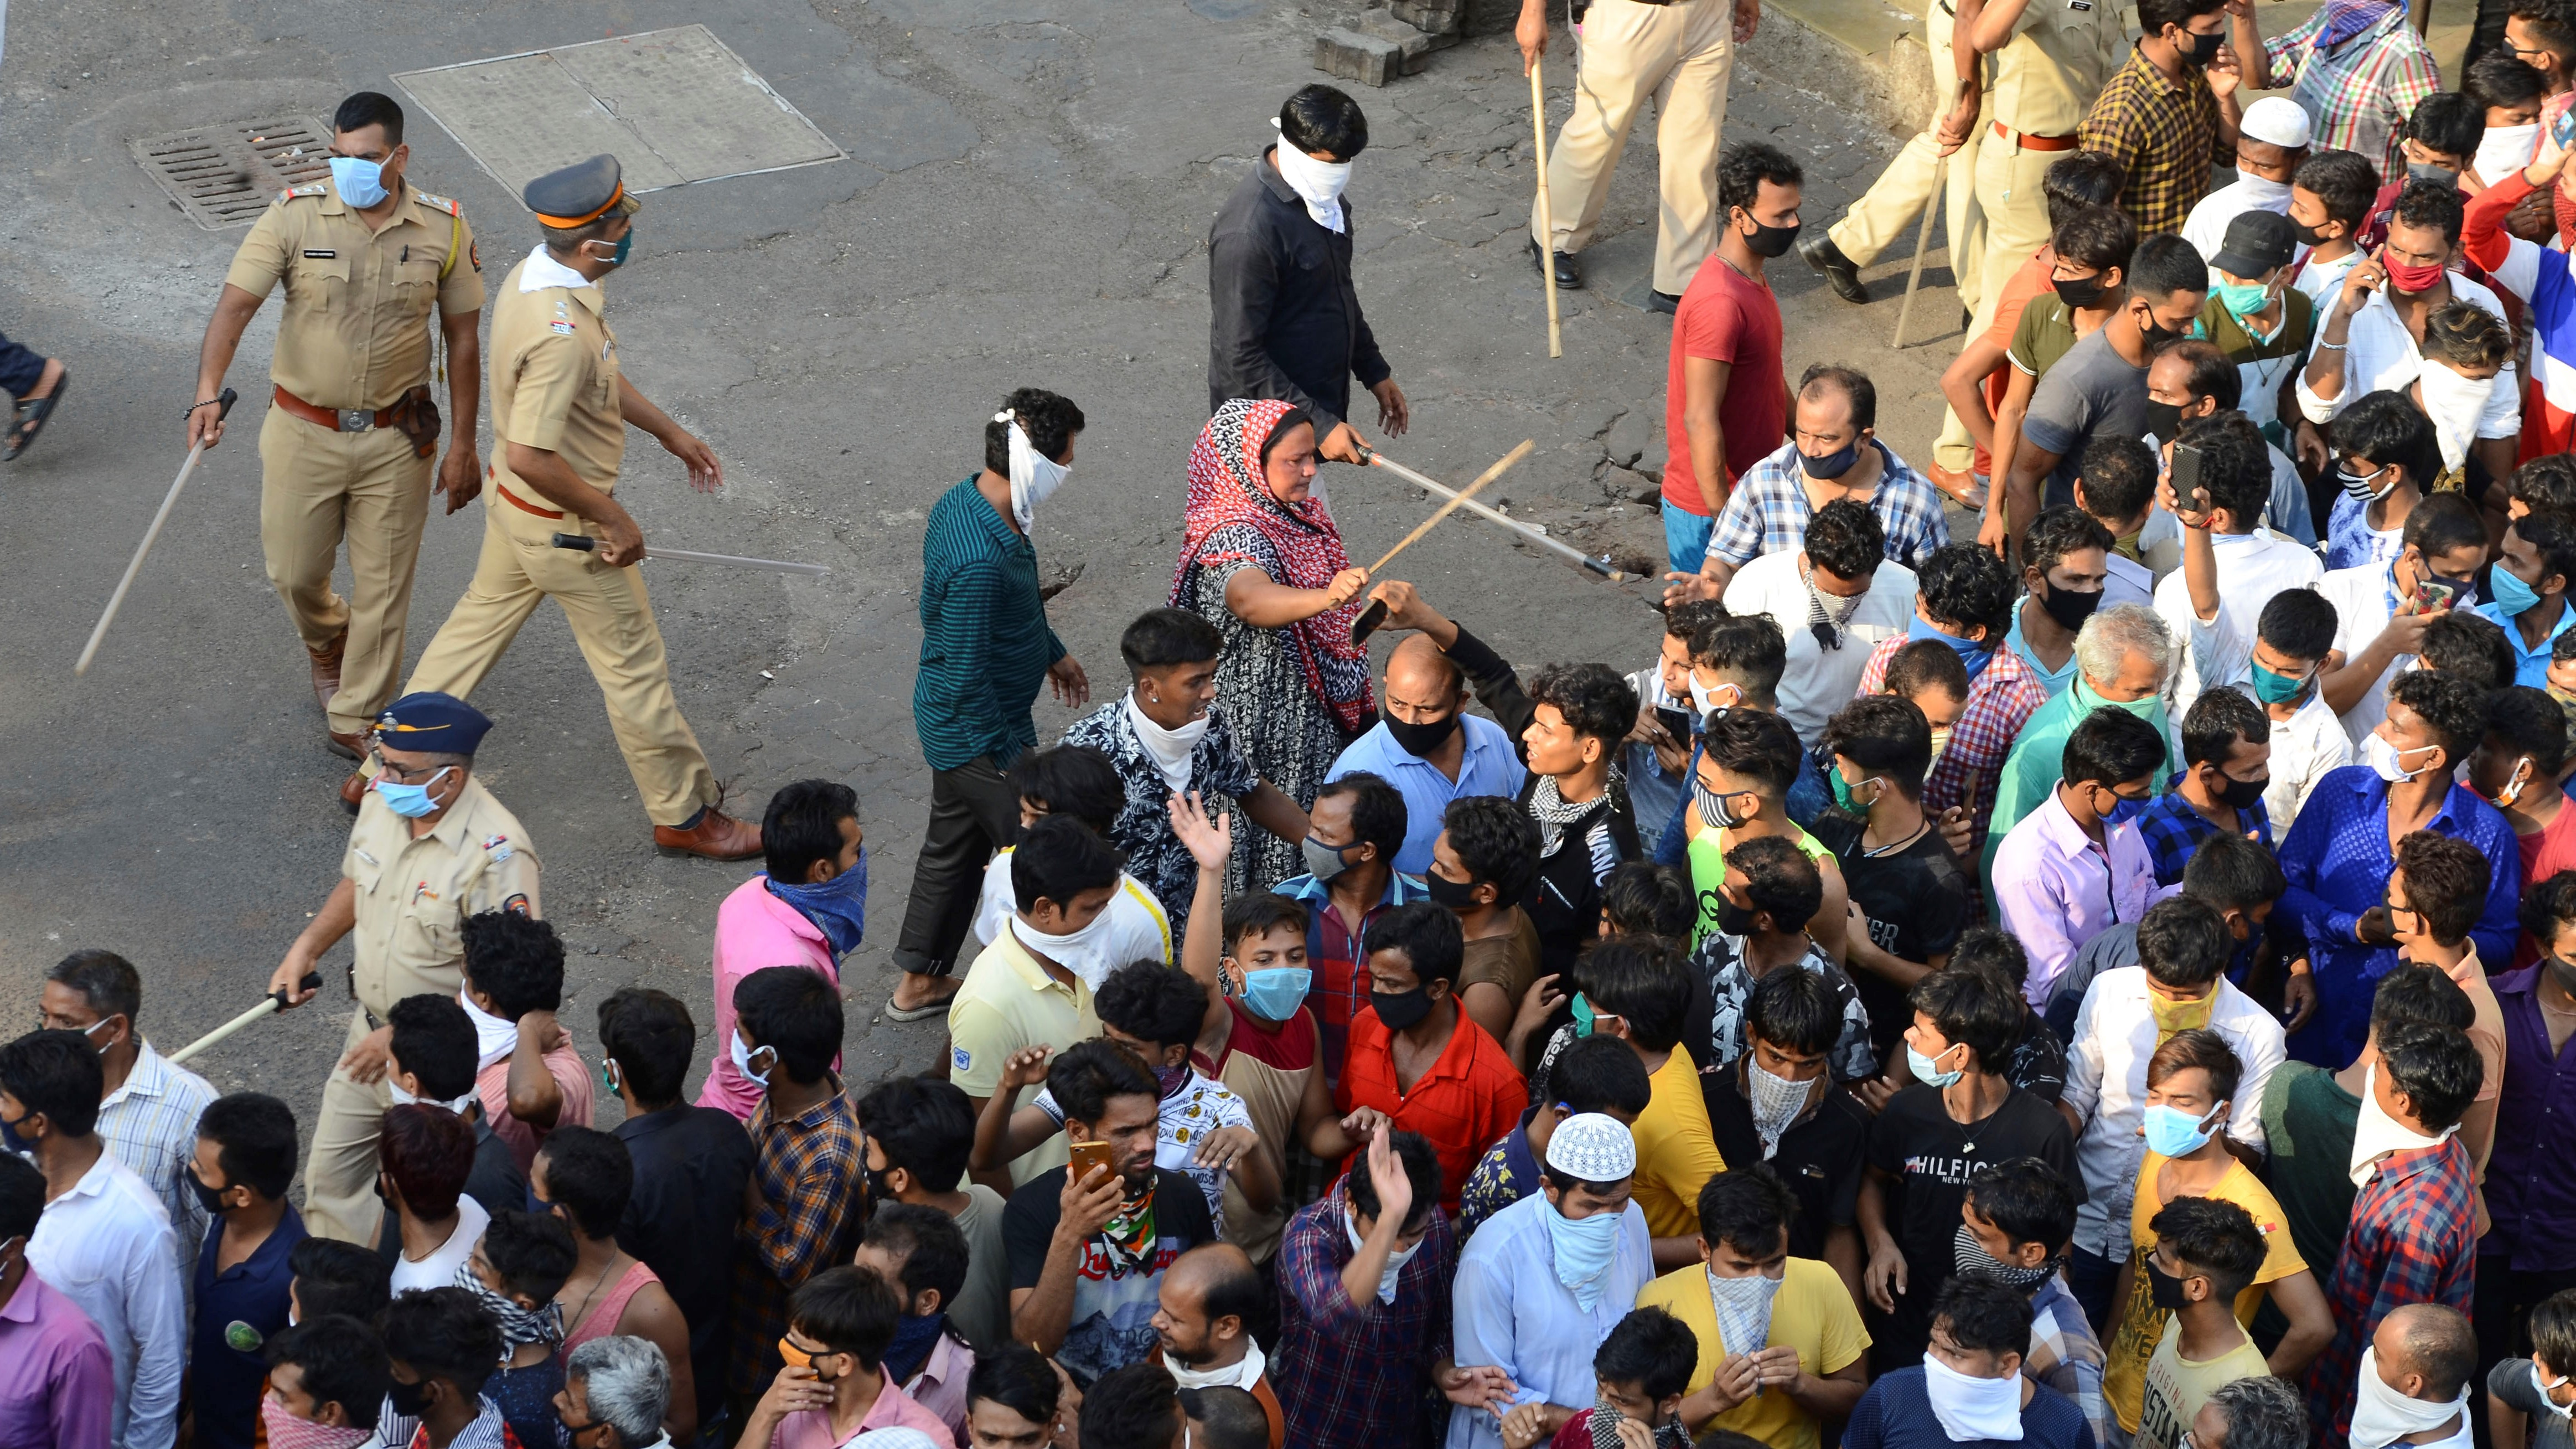 Police cracks down on protesting migrants in Mumbai.